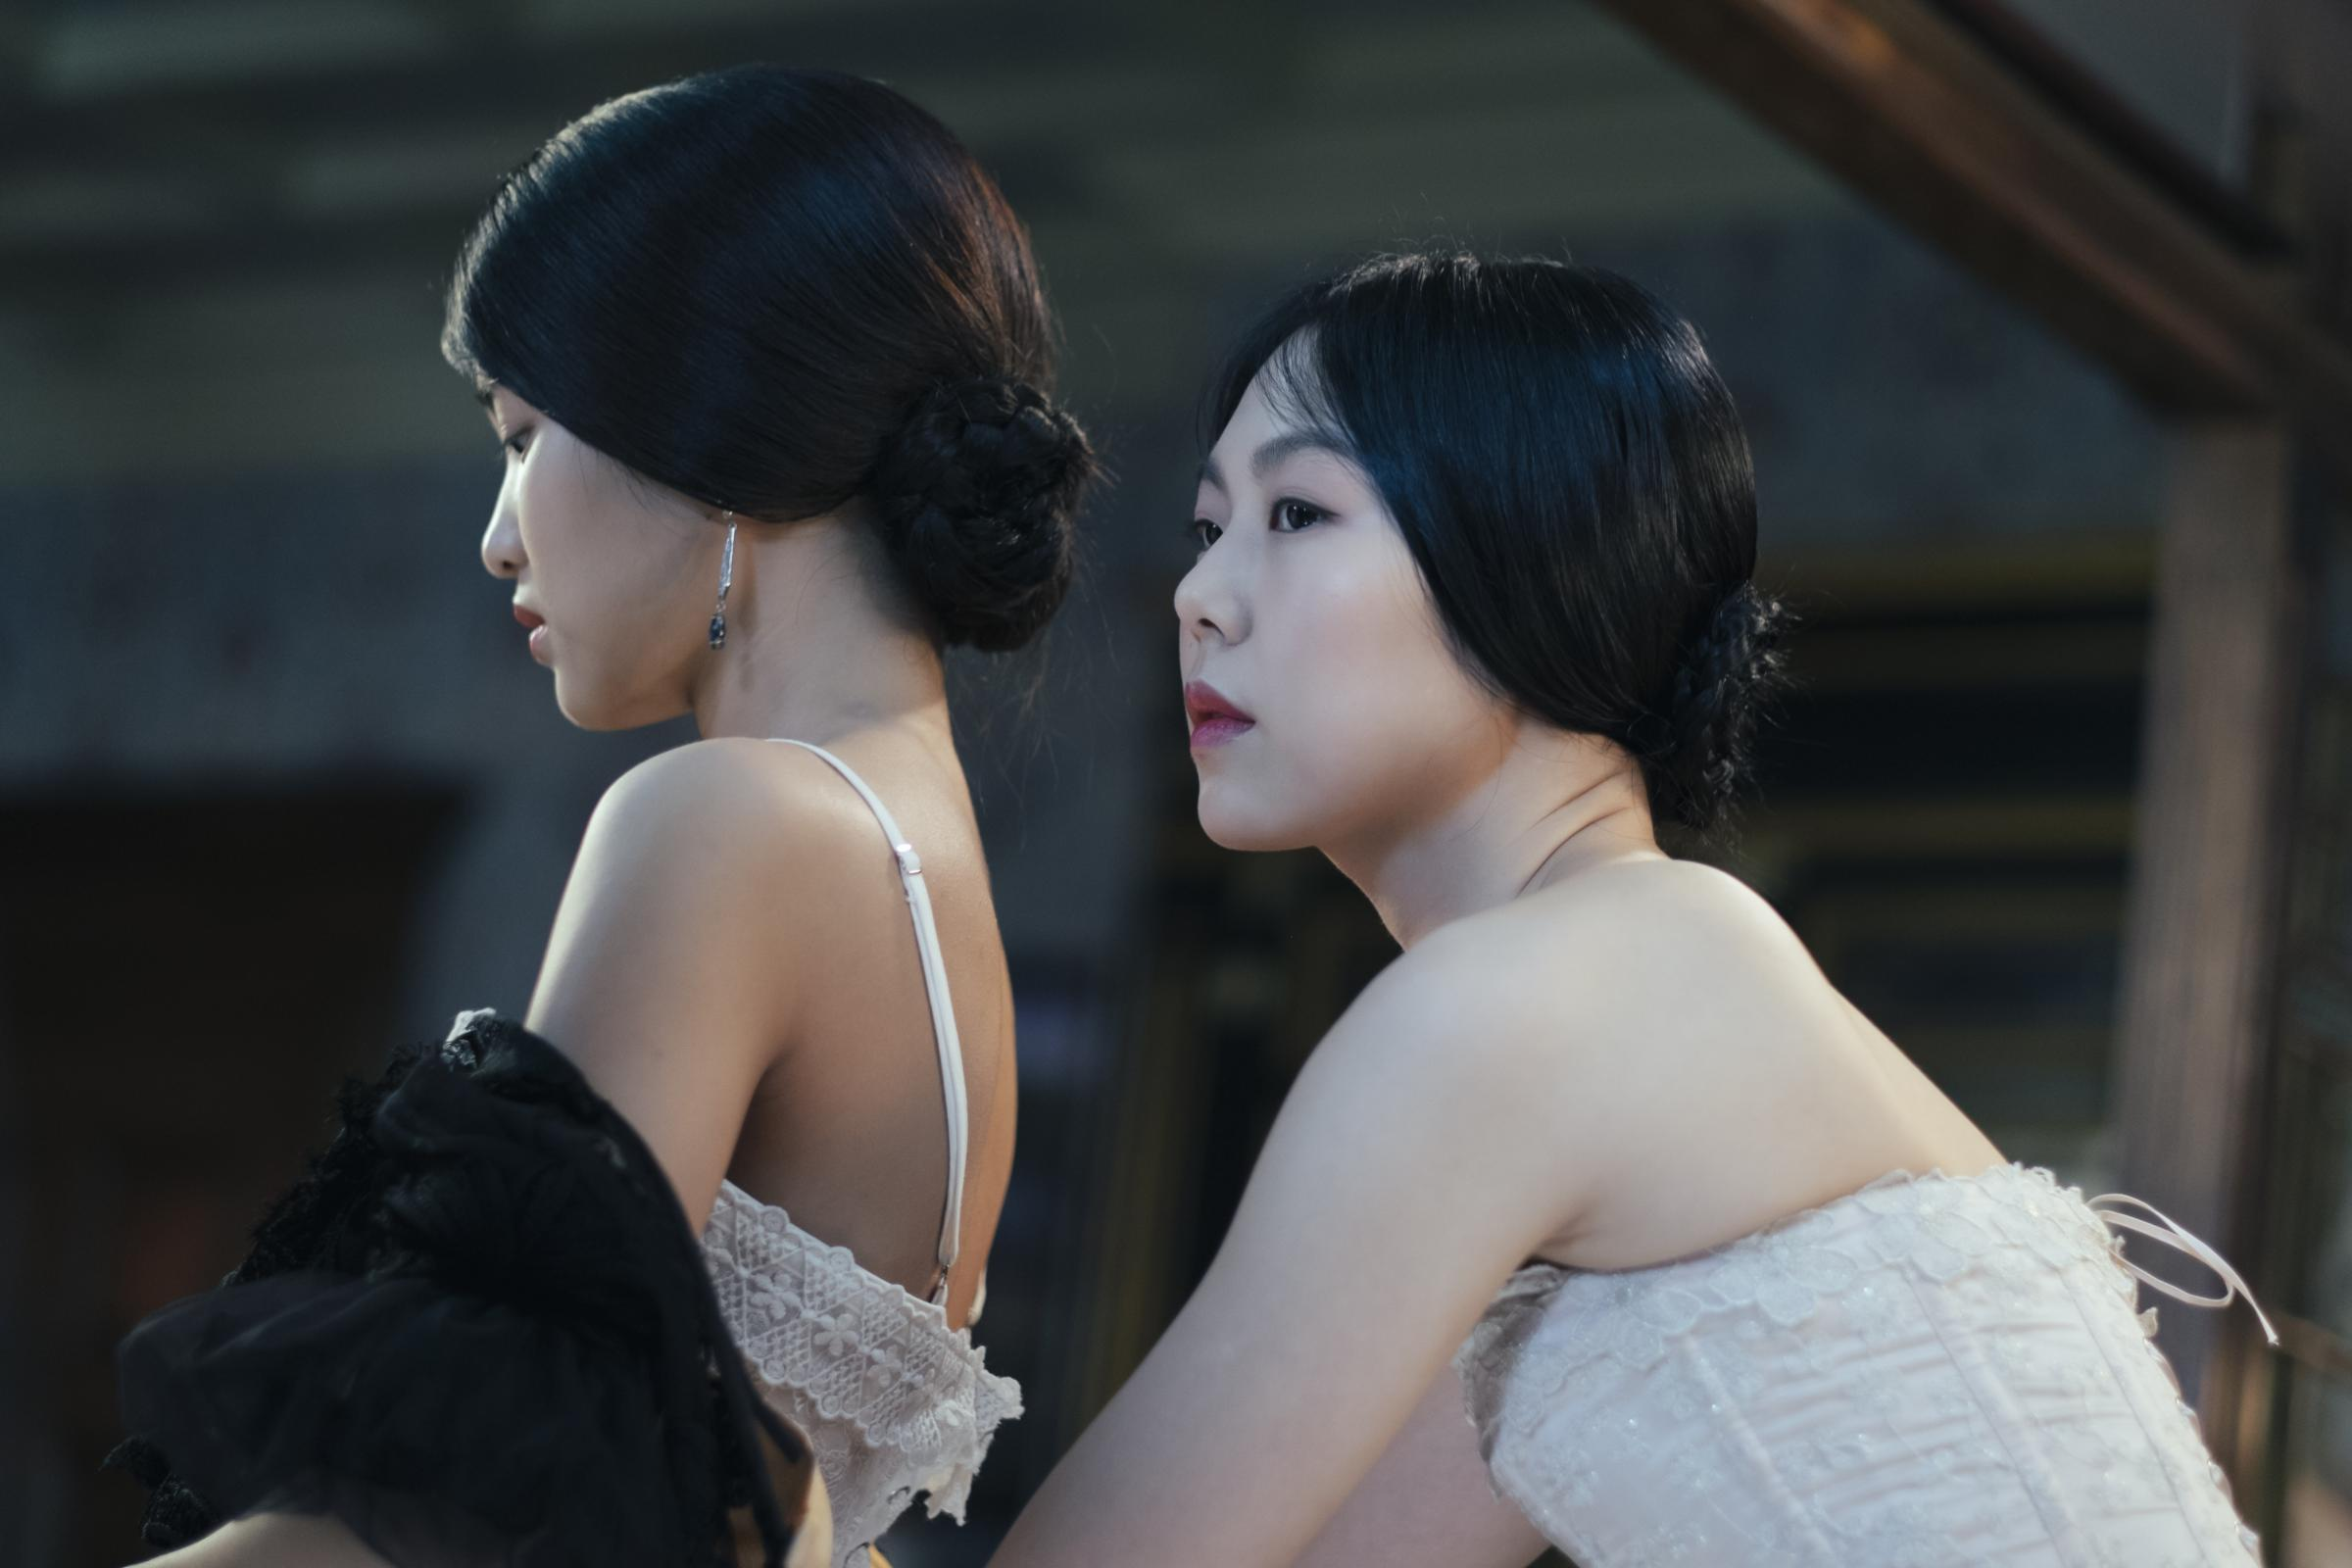 Kim Tae-ri as Sook-hee (left) and Kim Min-hee as Izumi in Park Chan-wook's The Handmaiden.